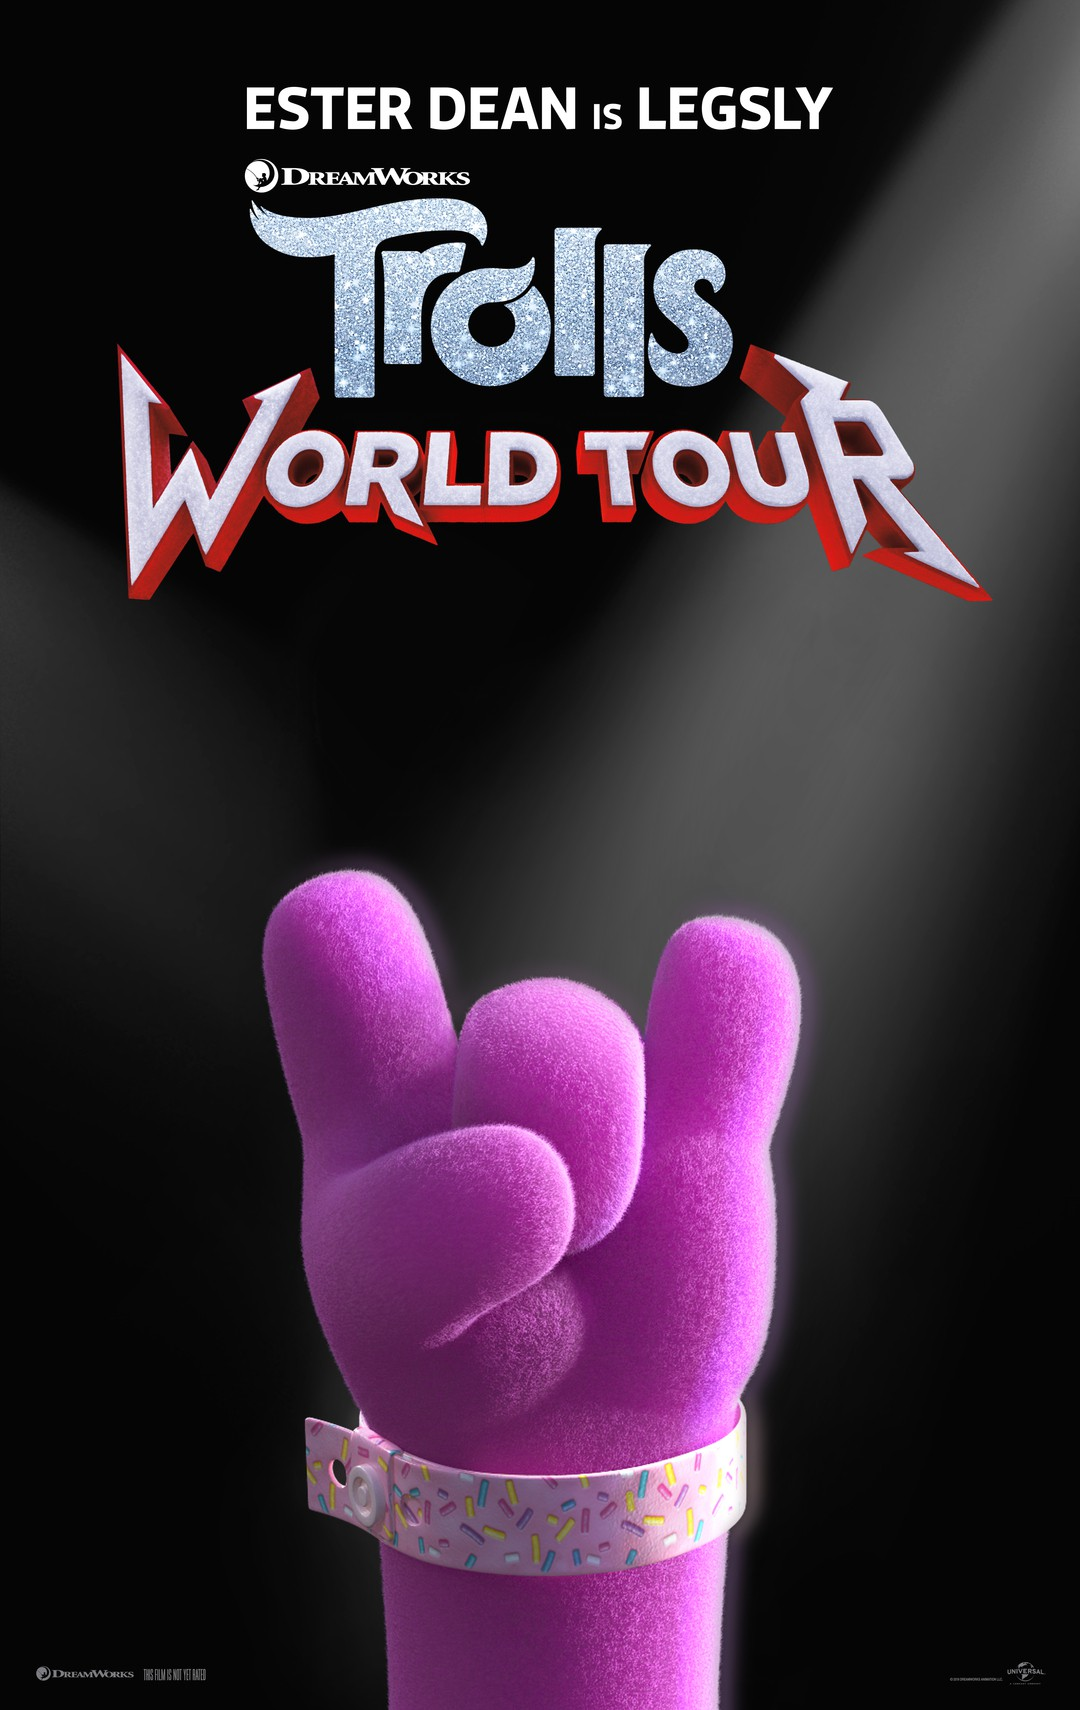 Trolls 2 World Tour Trailer - Bild 1 von 21